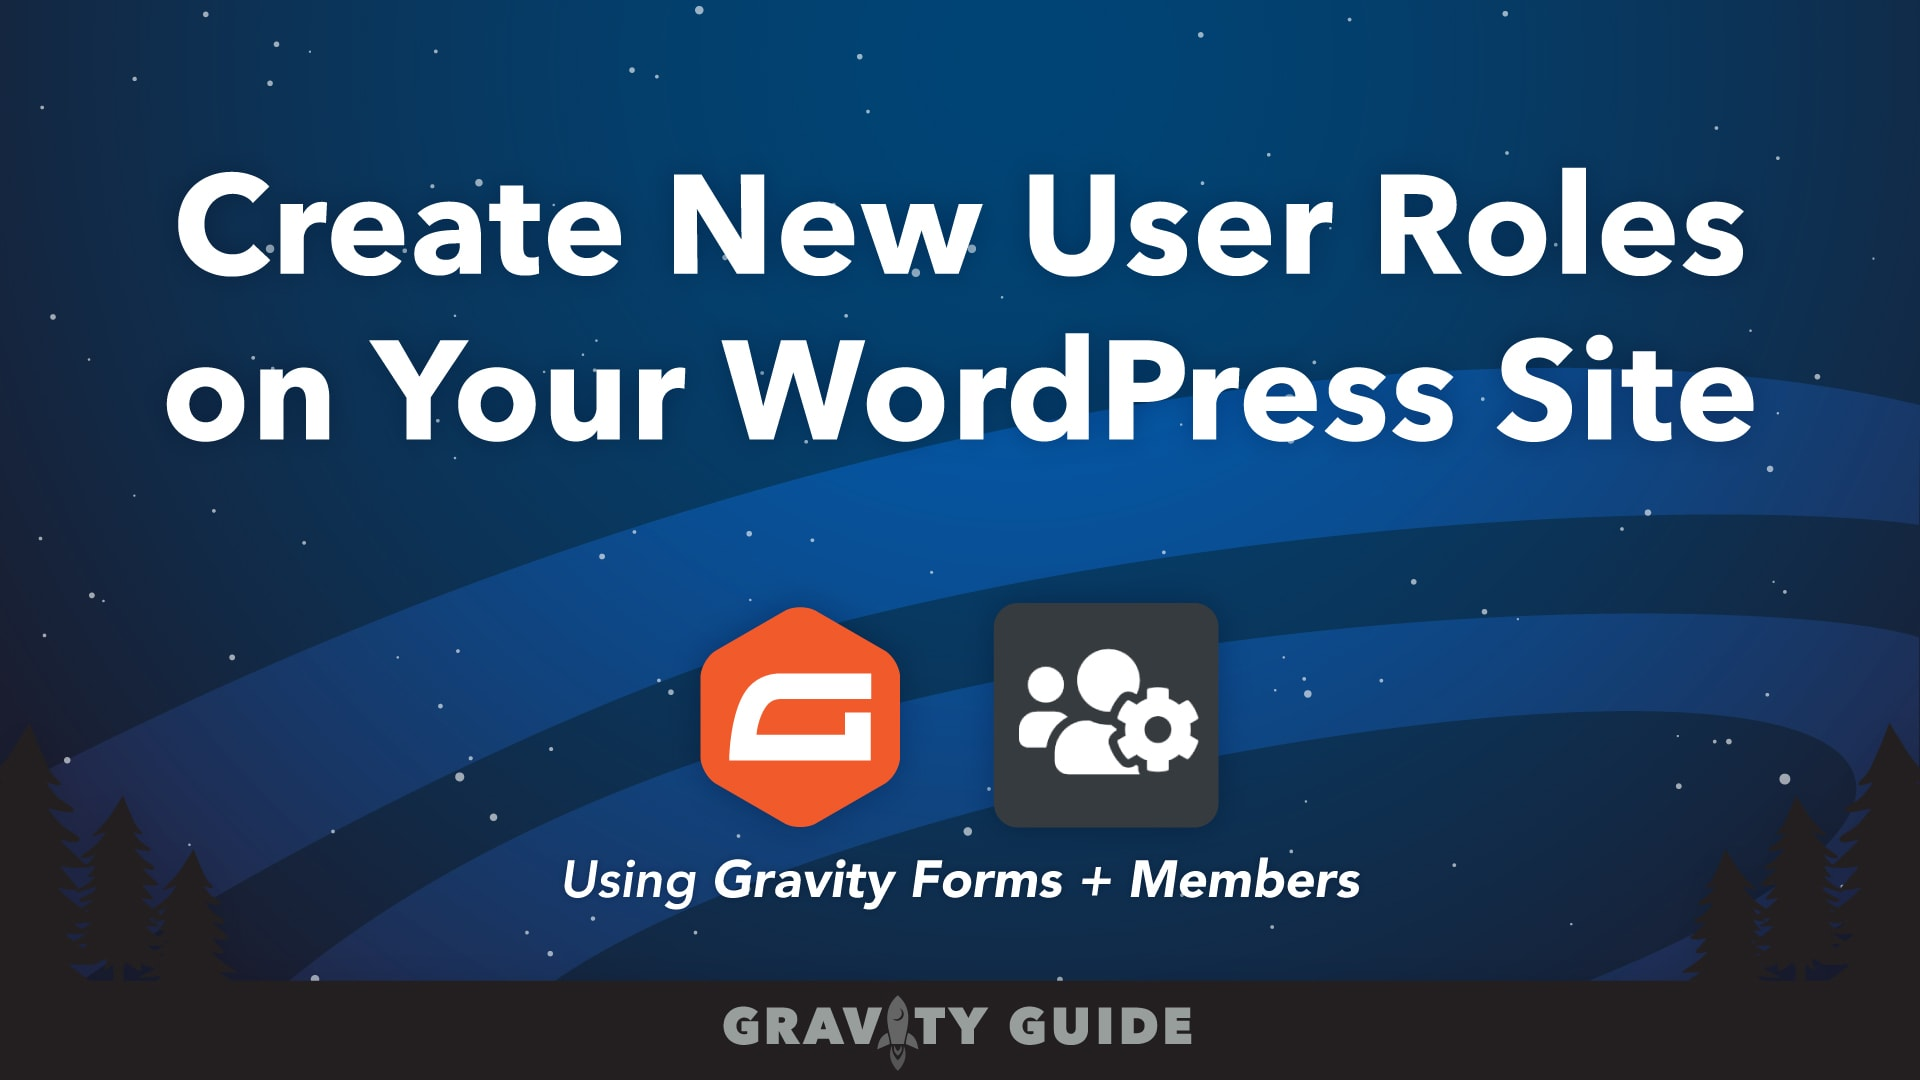 Create New User Roles on Your WordPress Site